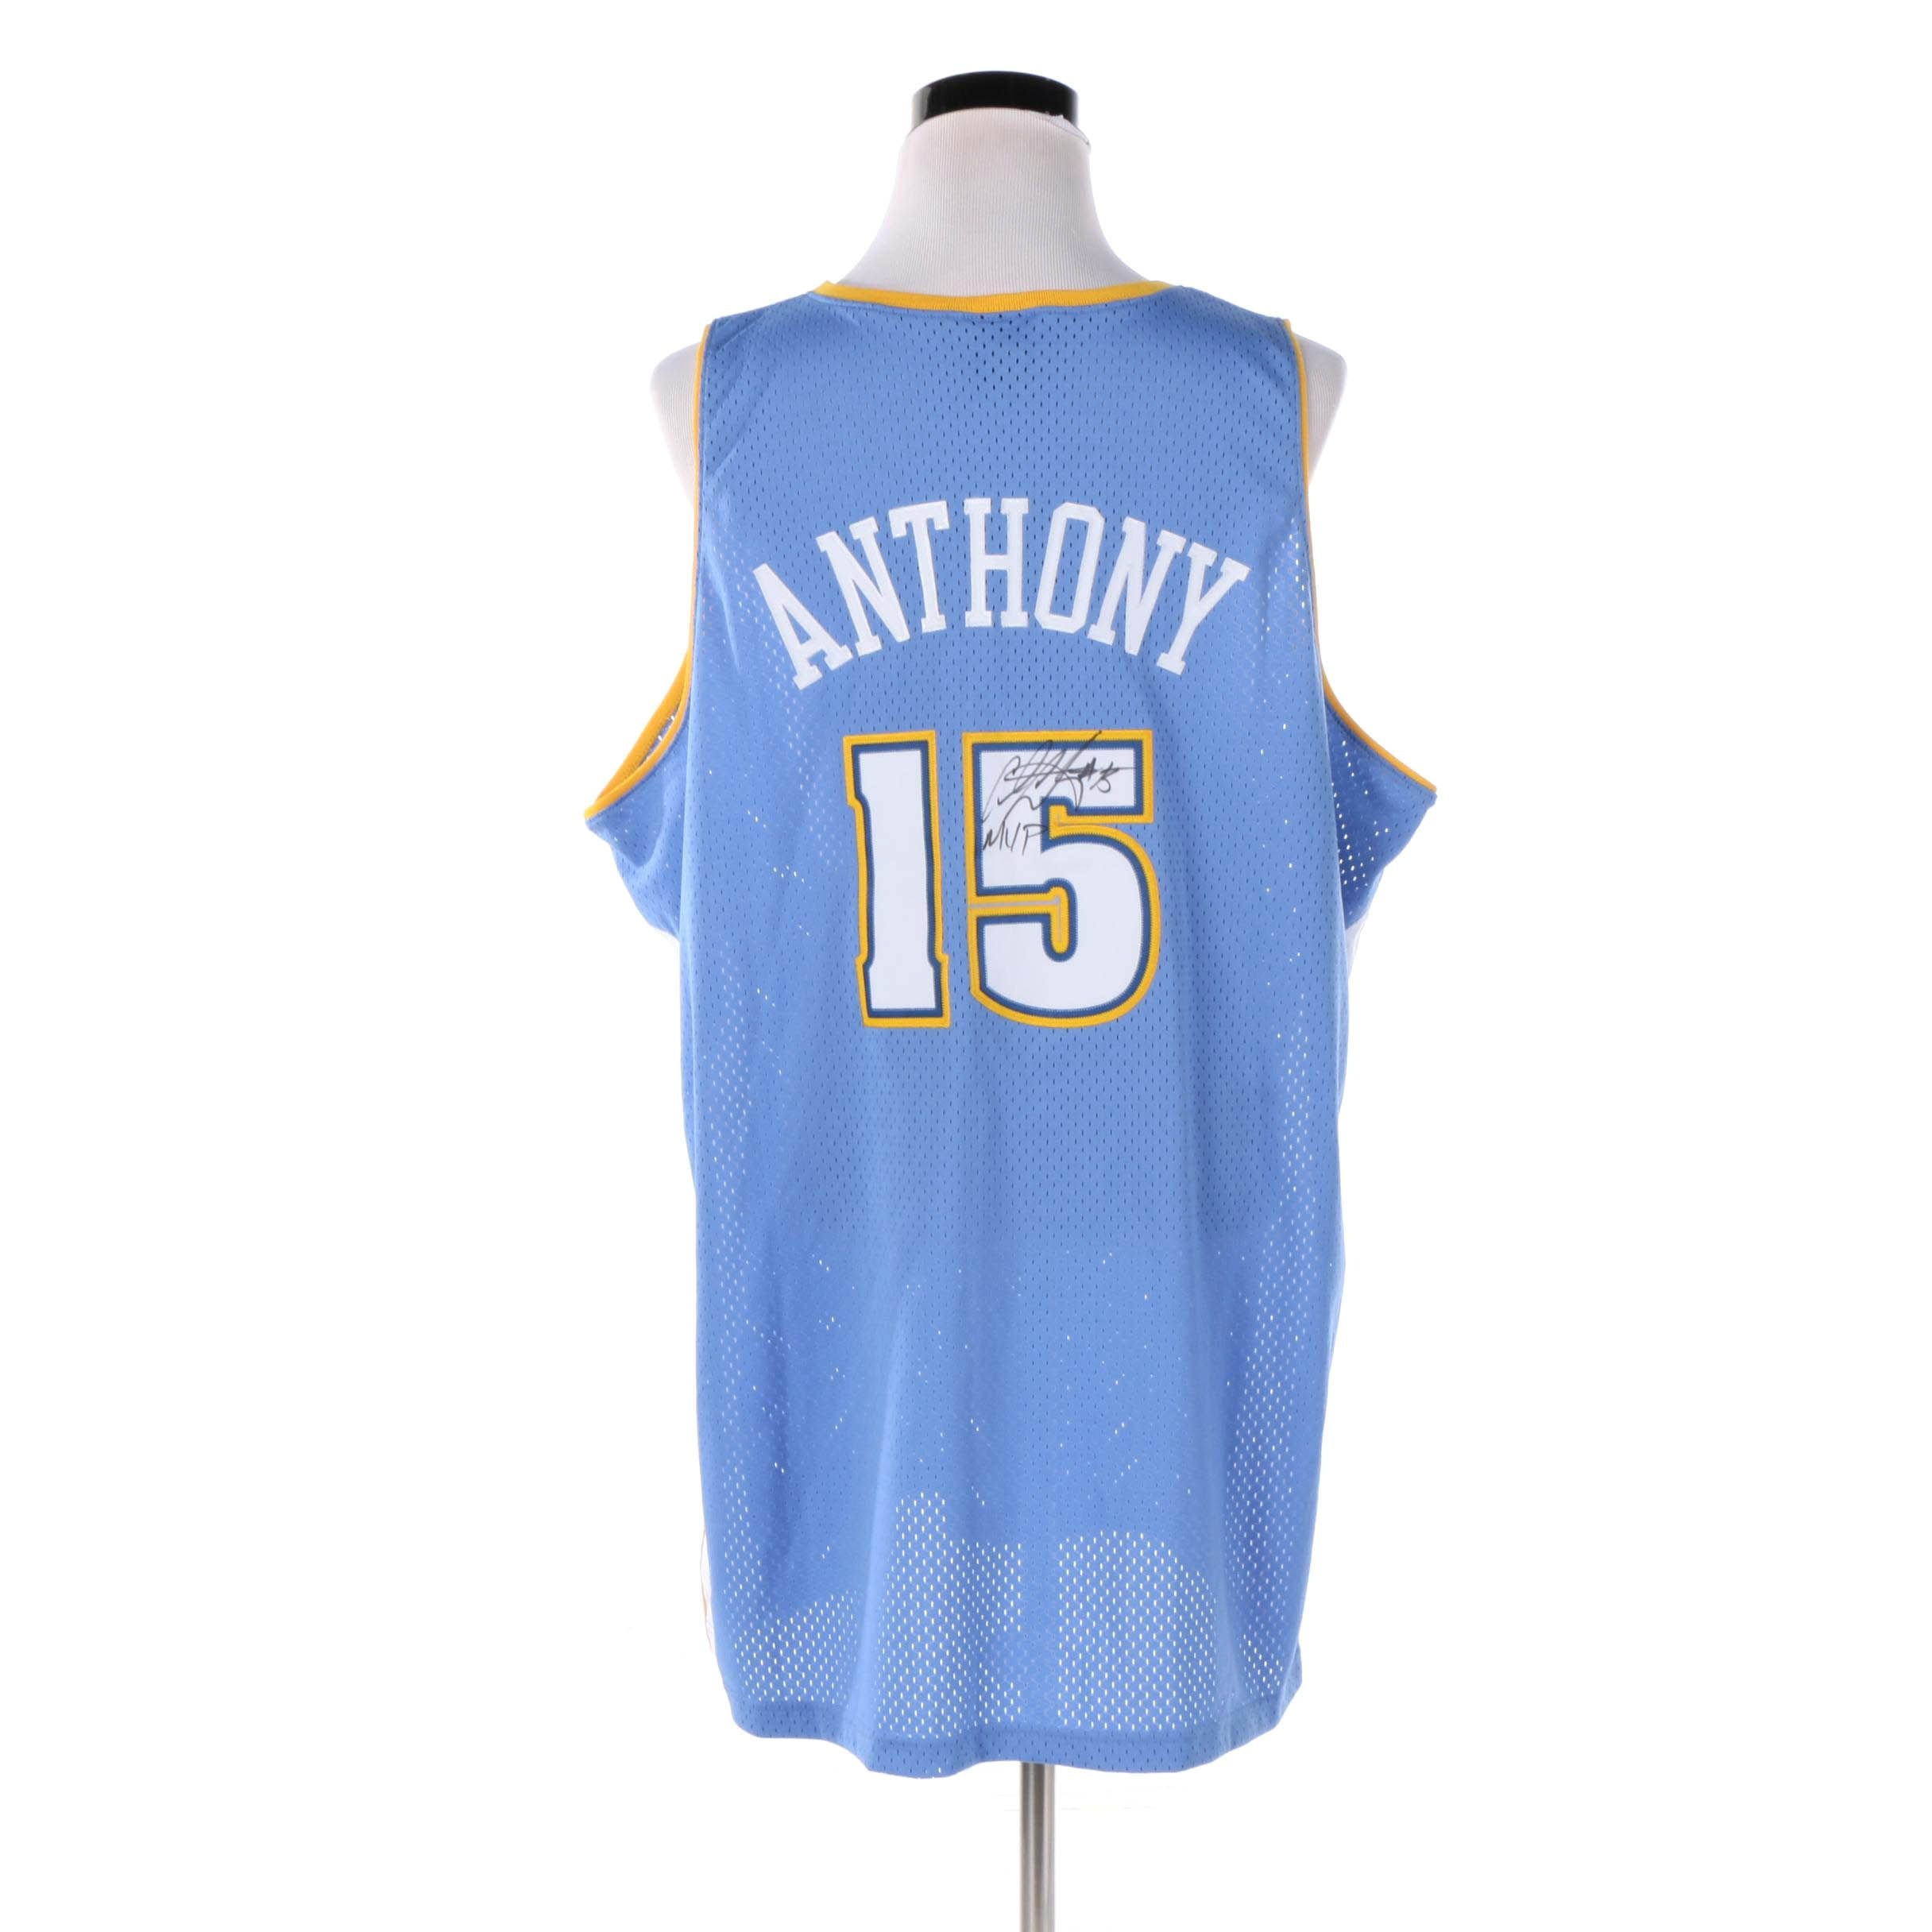 Denver Golden Nuggets Jersey Signed by Carmelo Anthony